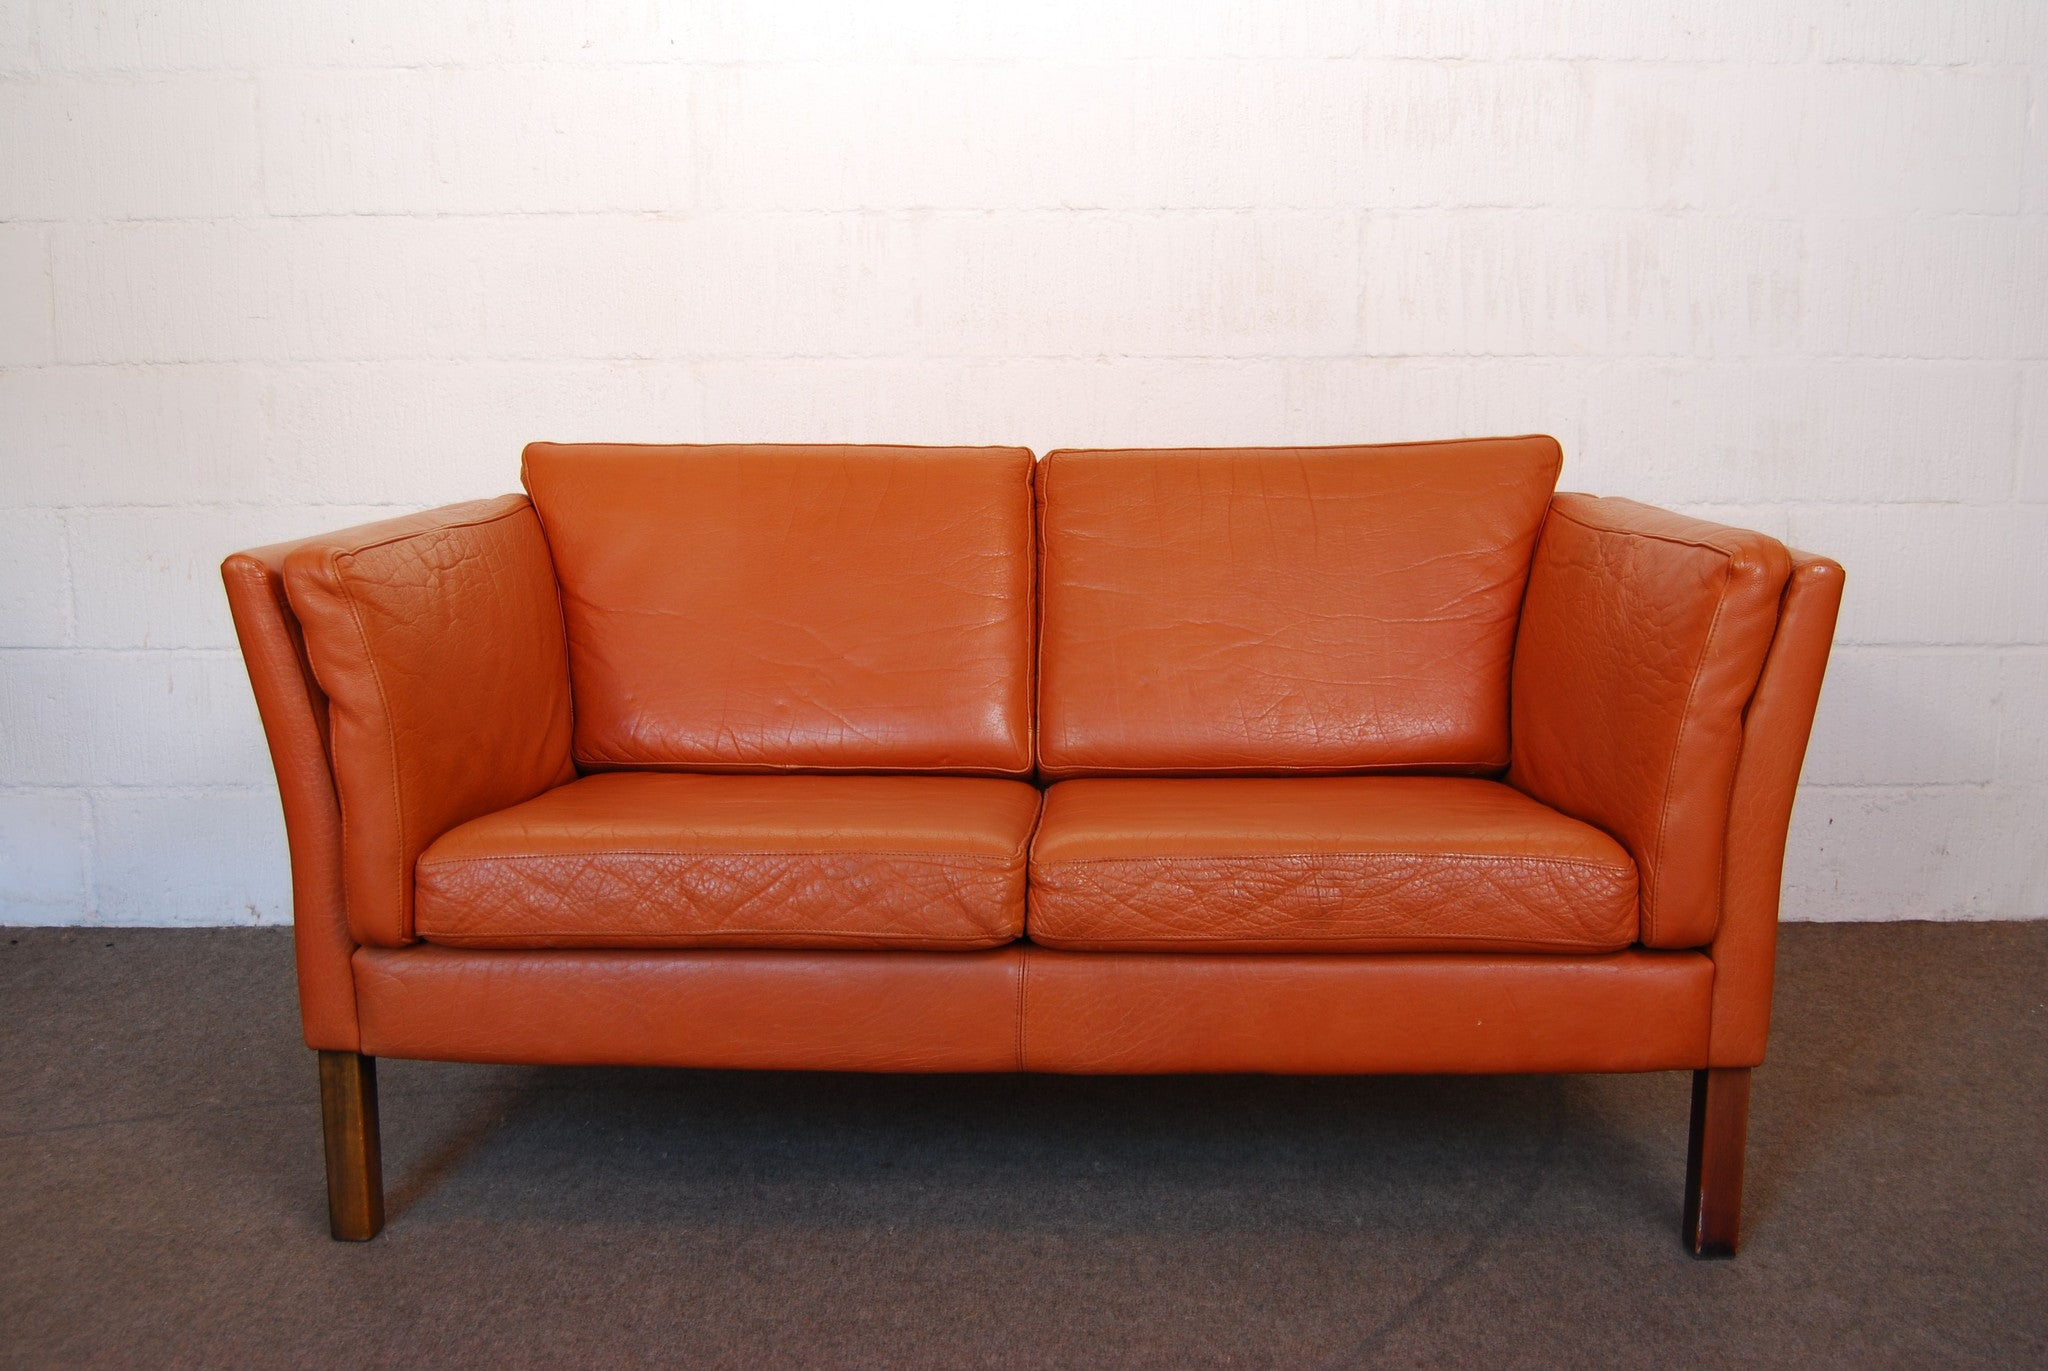 Two seat leather sofa by Mogens Hansen